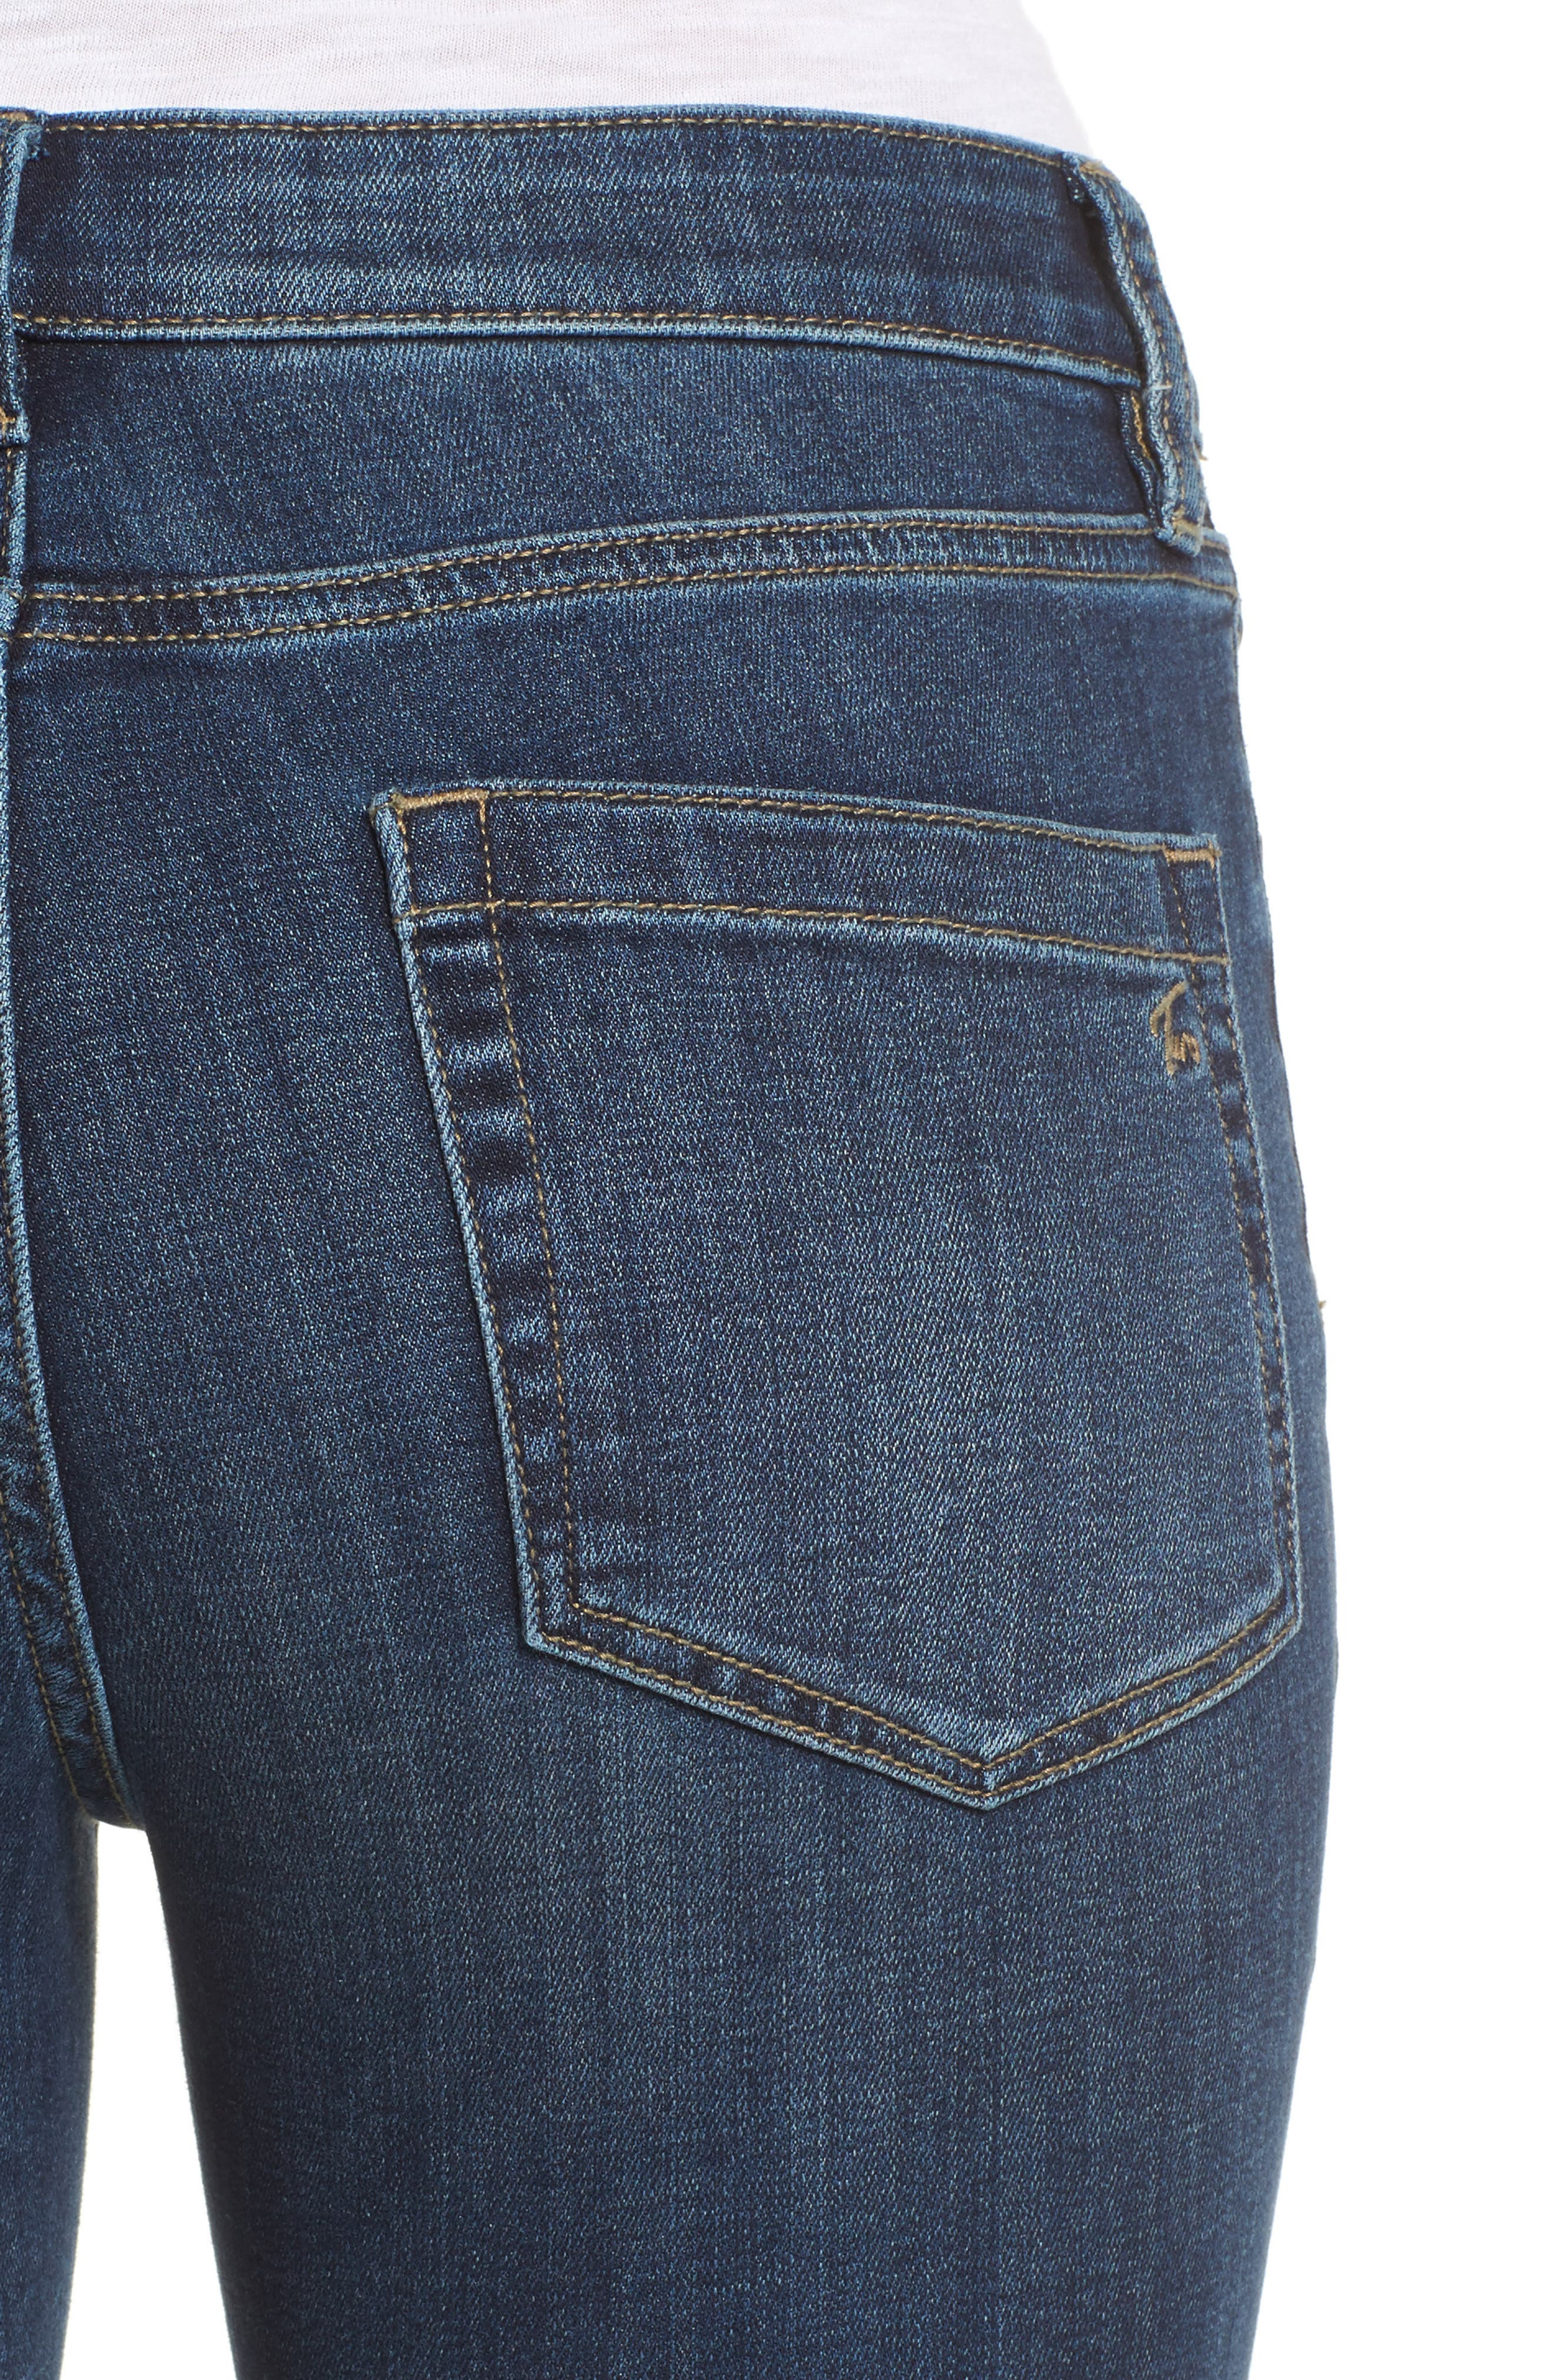 Alternate Image 4  - Two by Vince Camuto Cropped Flare Jeans (Mid Vintage)